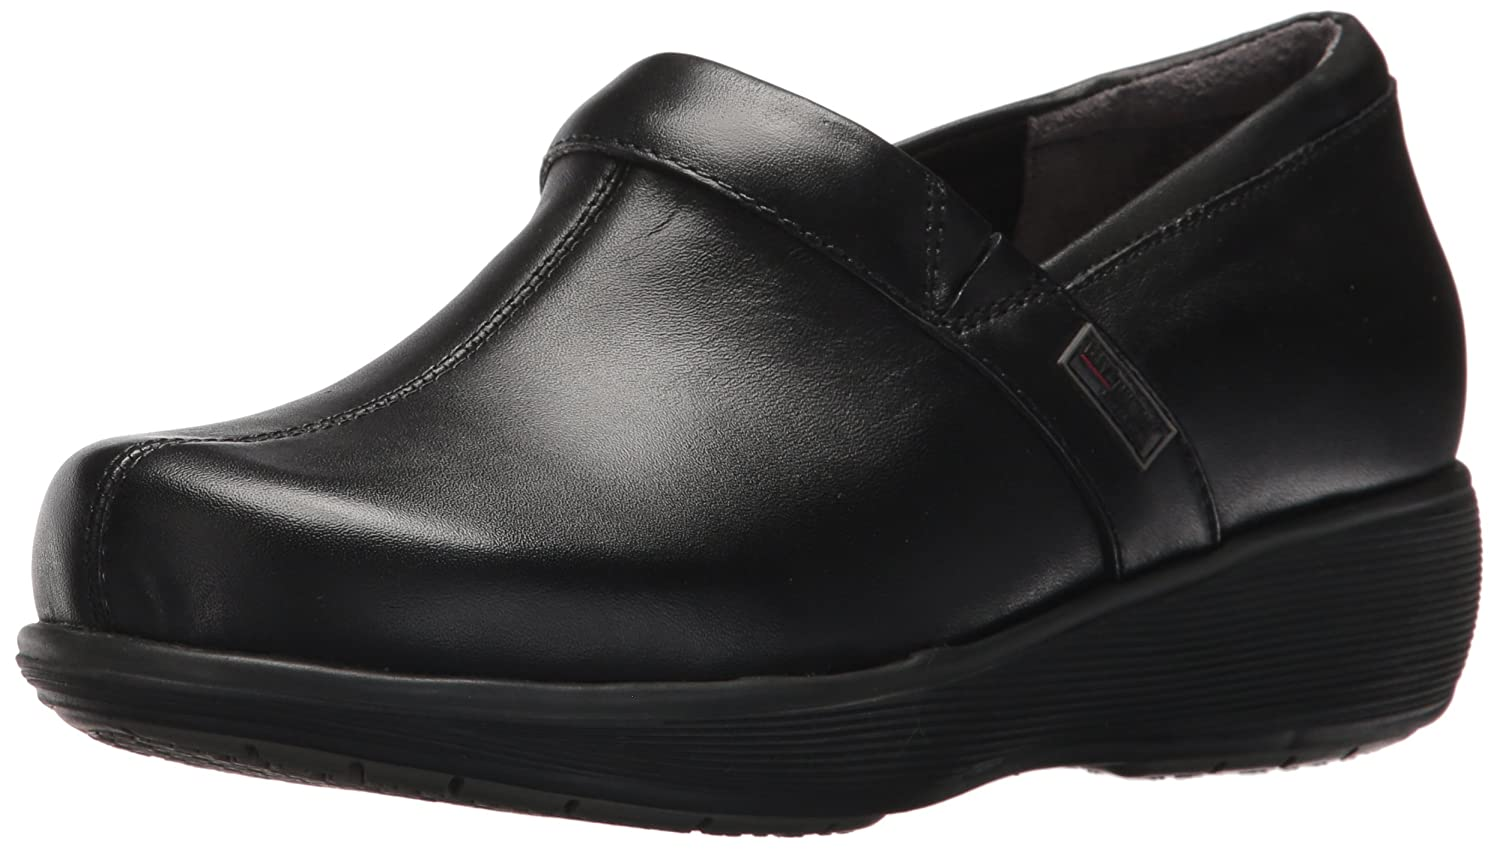 SoftWalk Women's Meredith Clog B00J0A4DKY 10.5 W US|Black Box